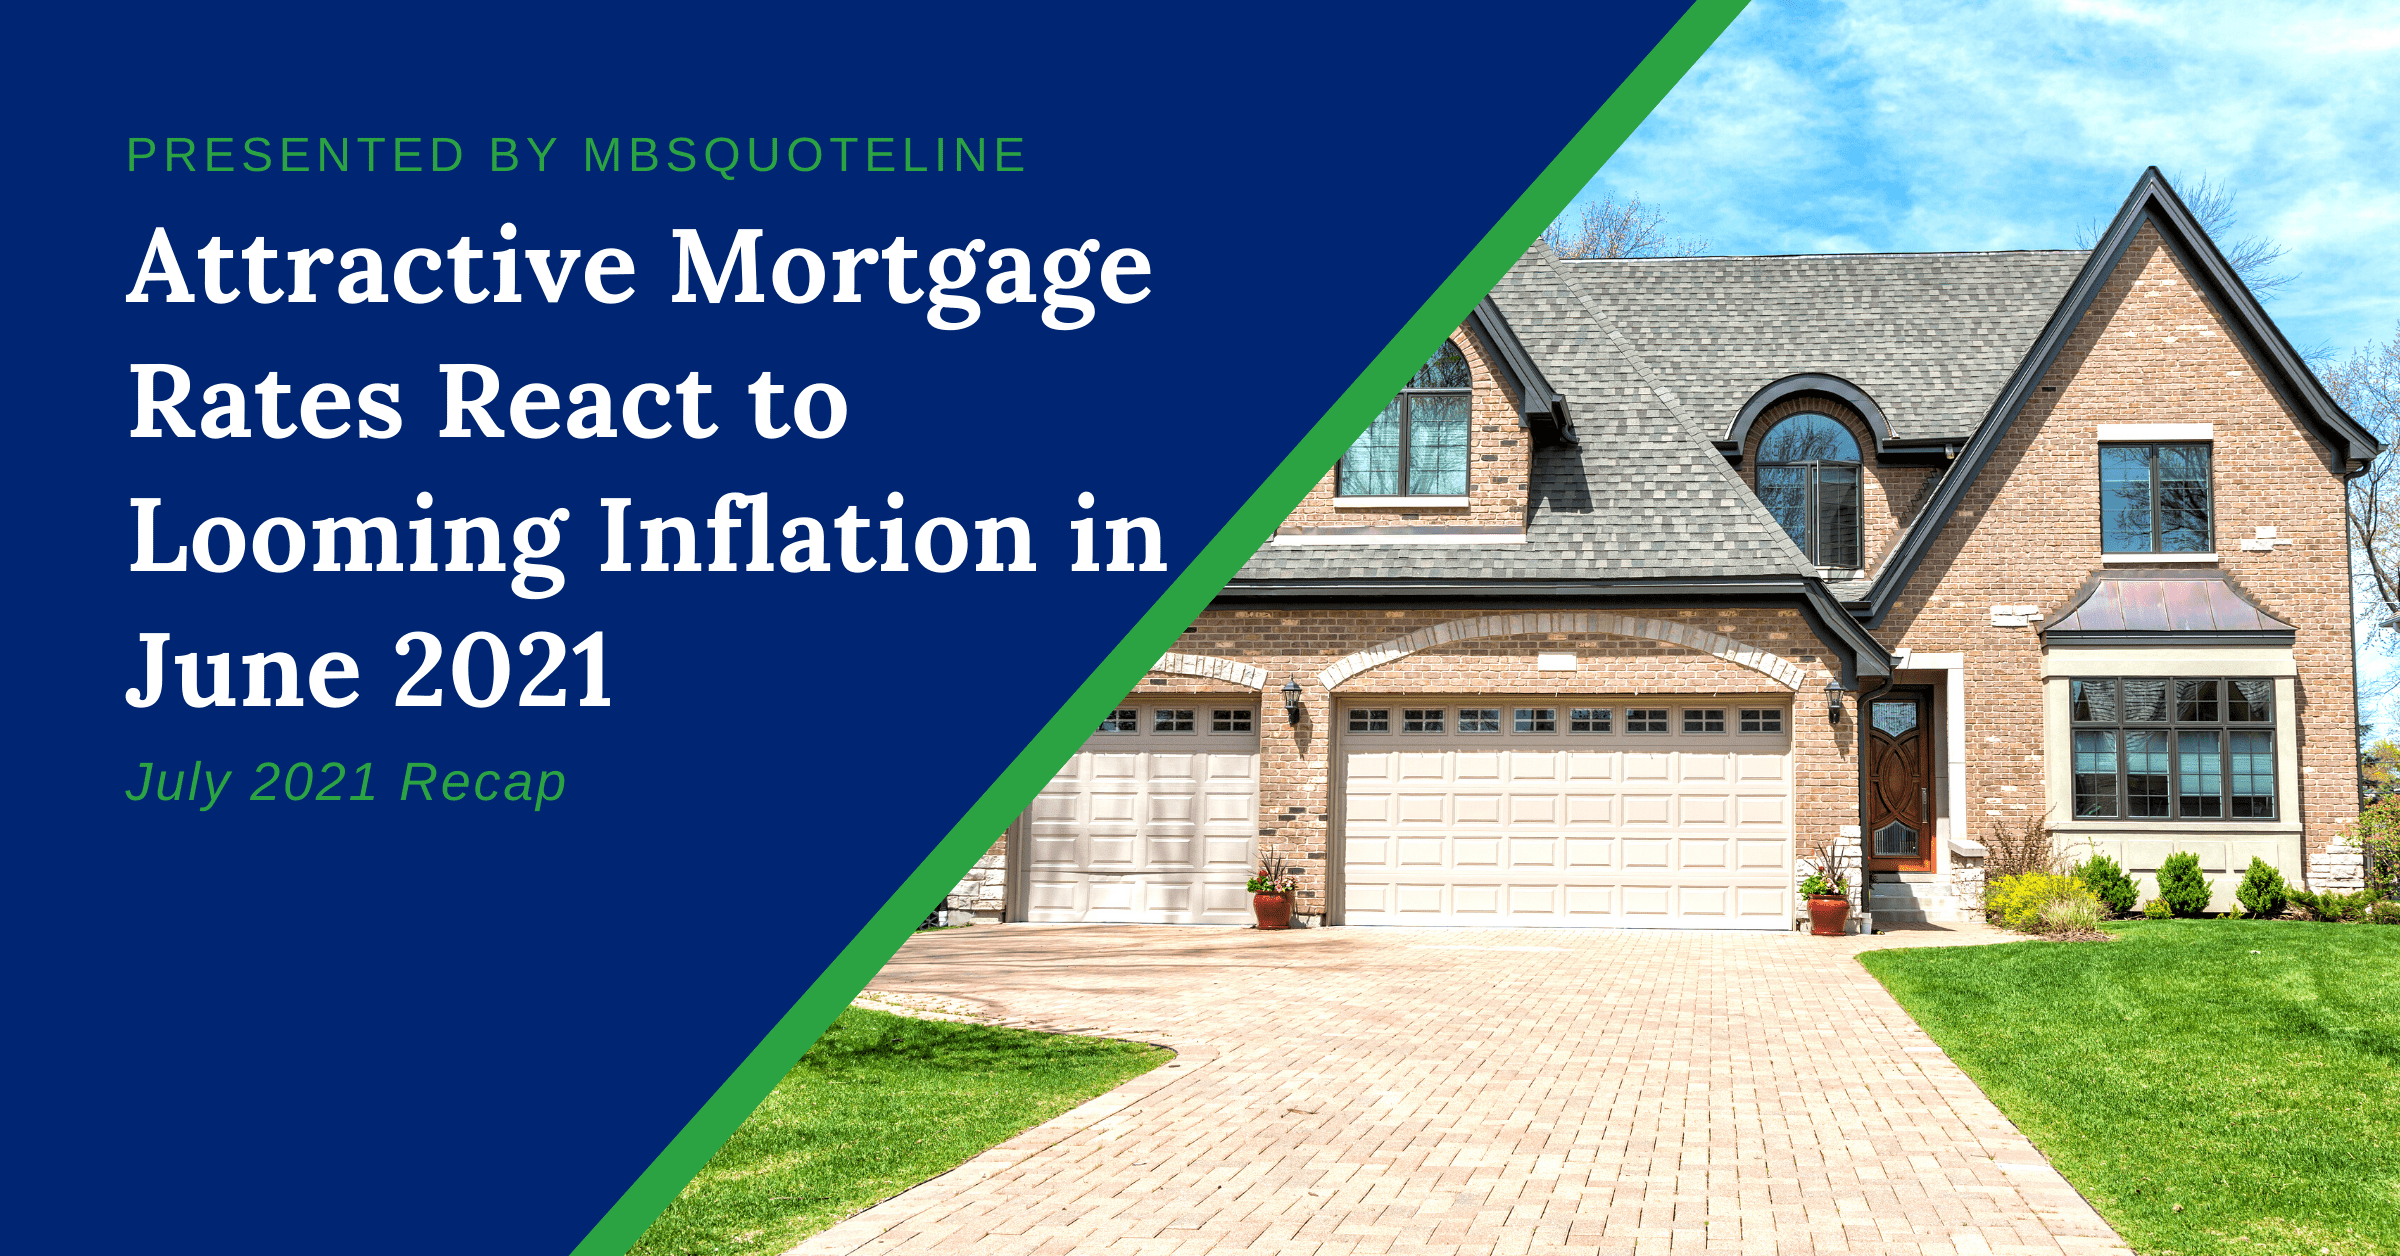 Attractive Mortgage Rates React to Looming Inflation in June 2021